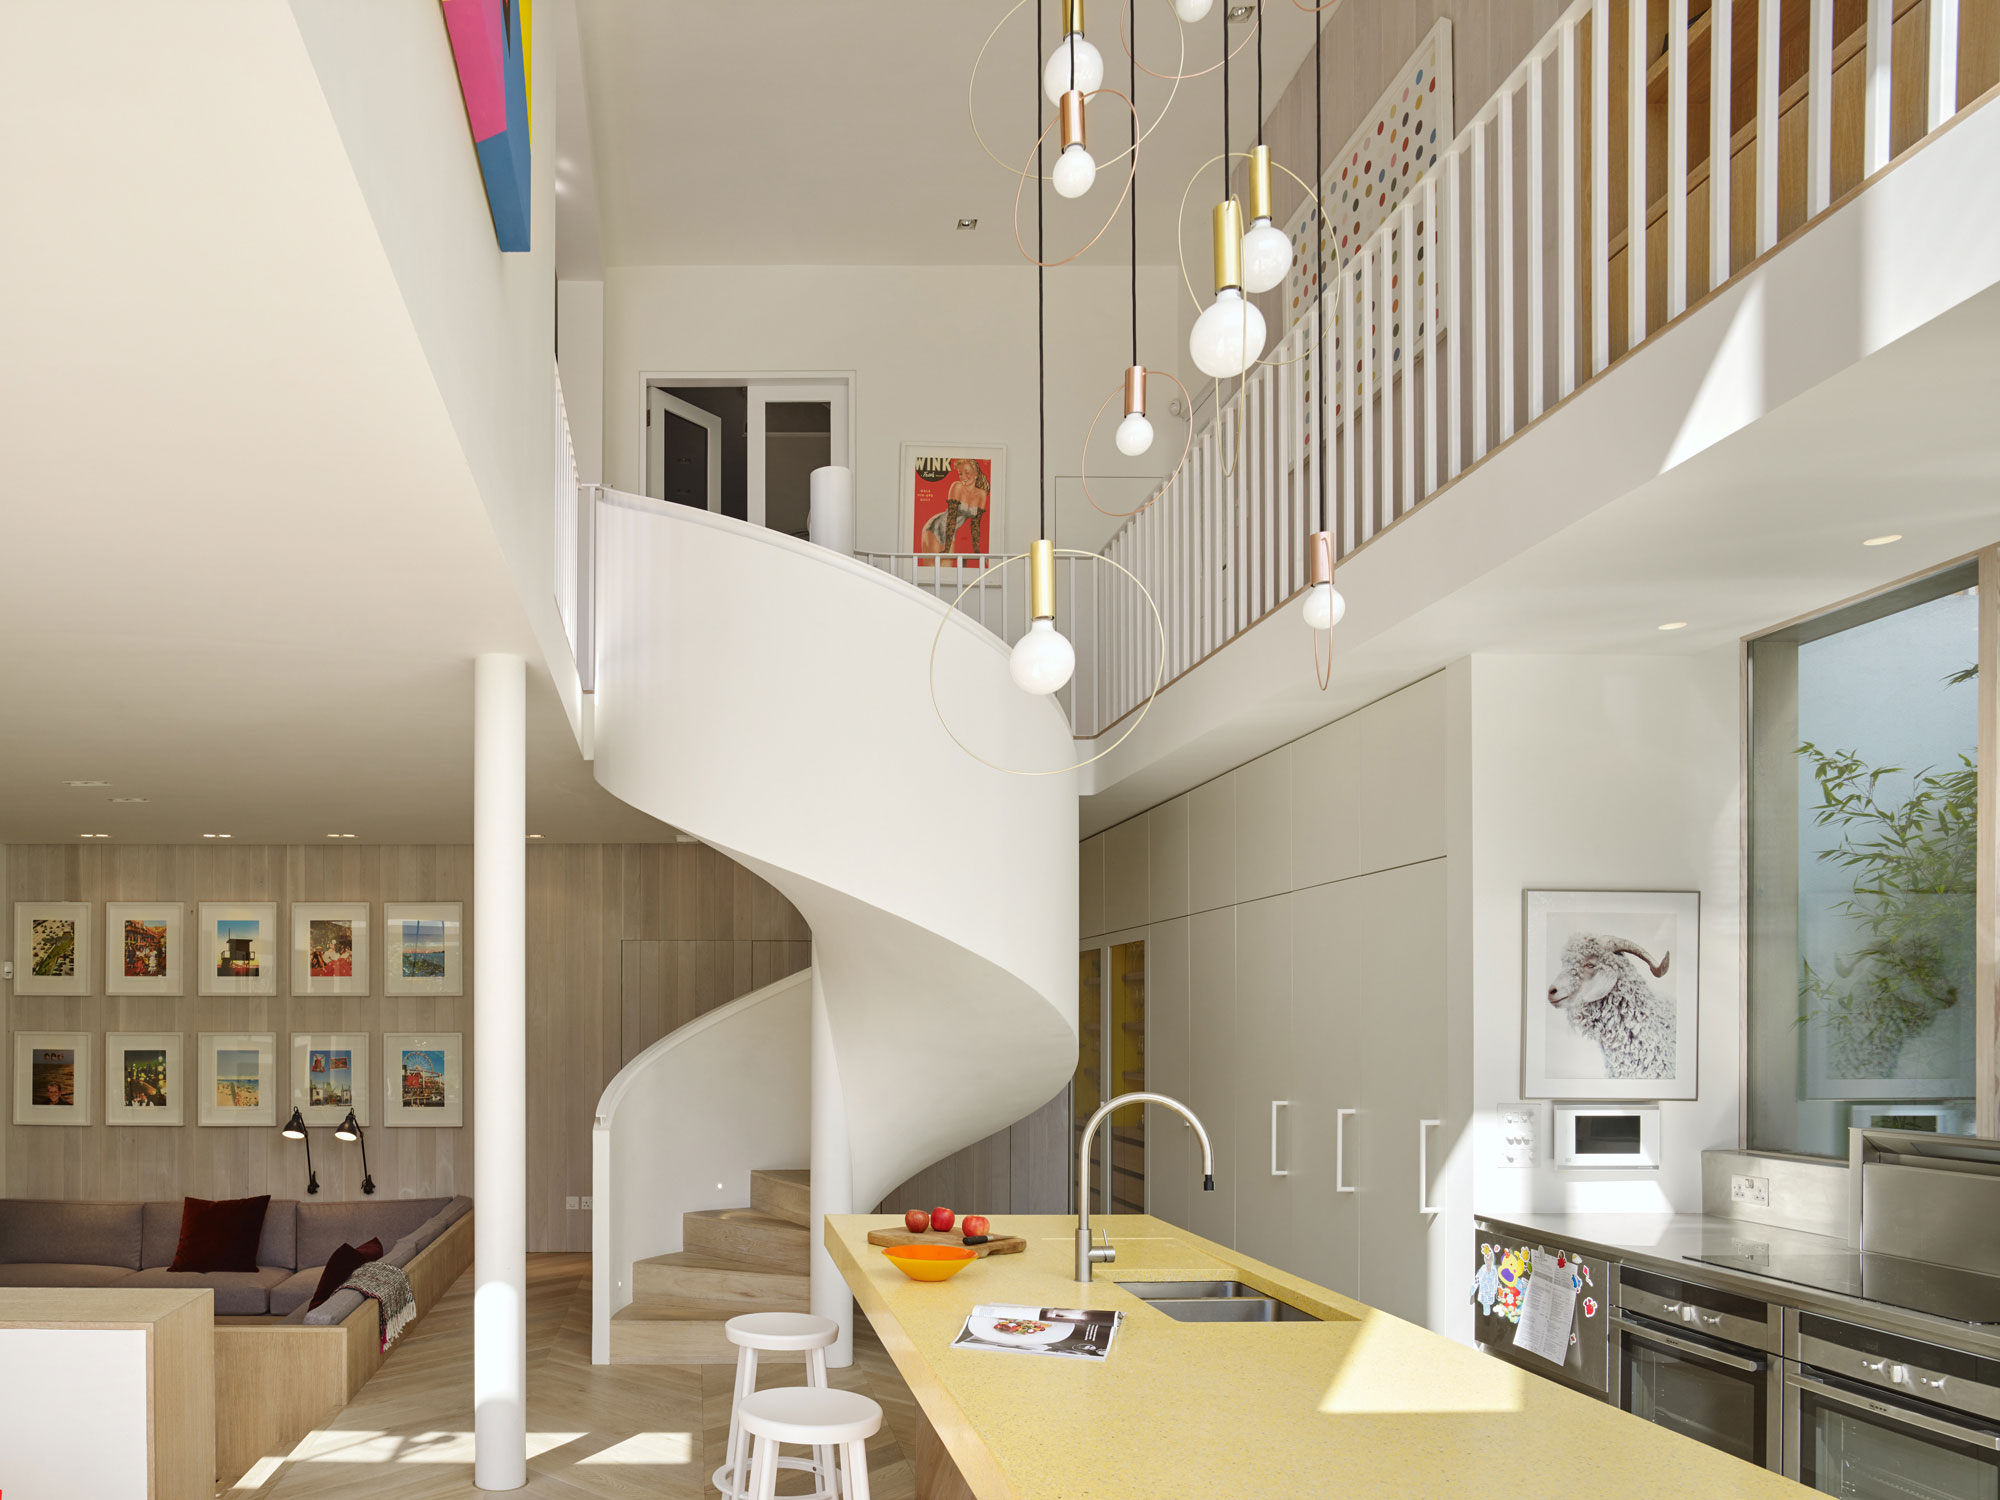 Andy Martin Architecture Refurbish a 5-Bedroom Edwardian Home in London